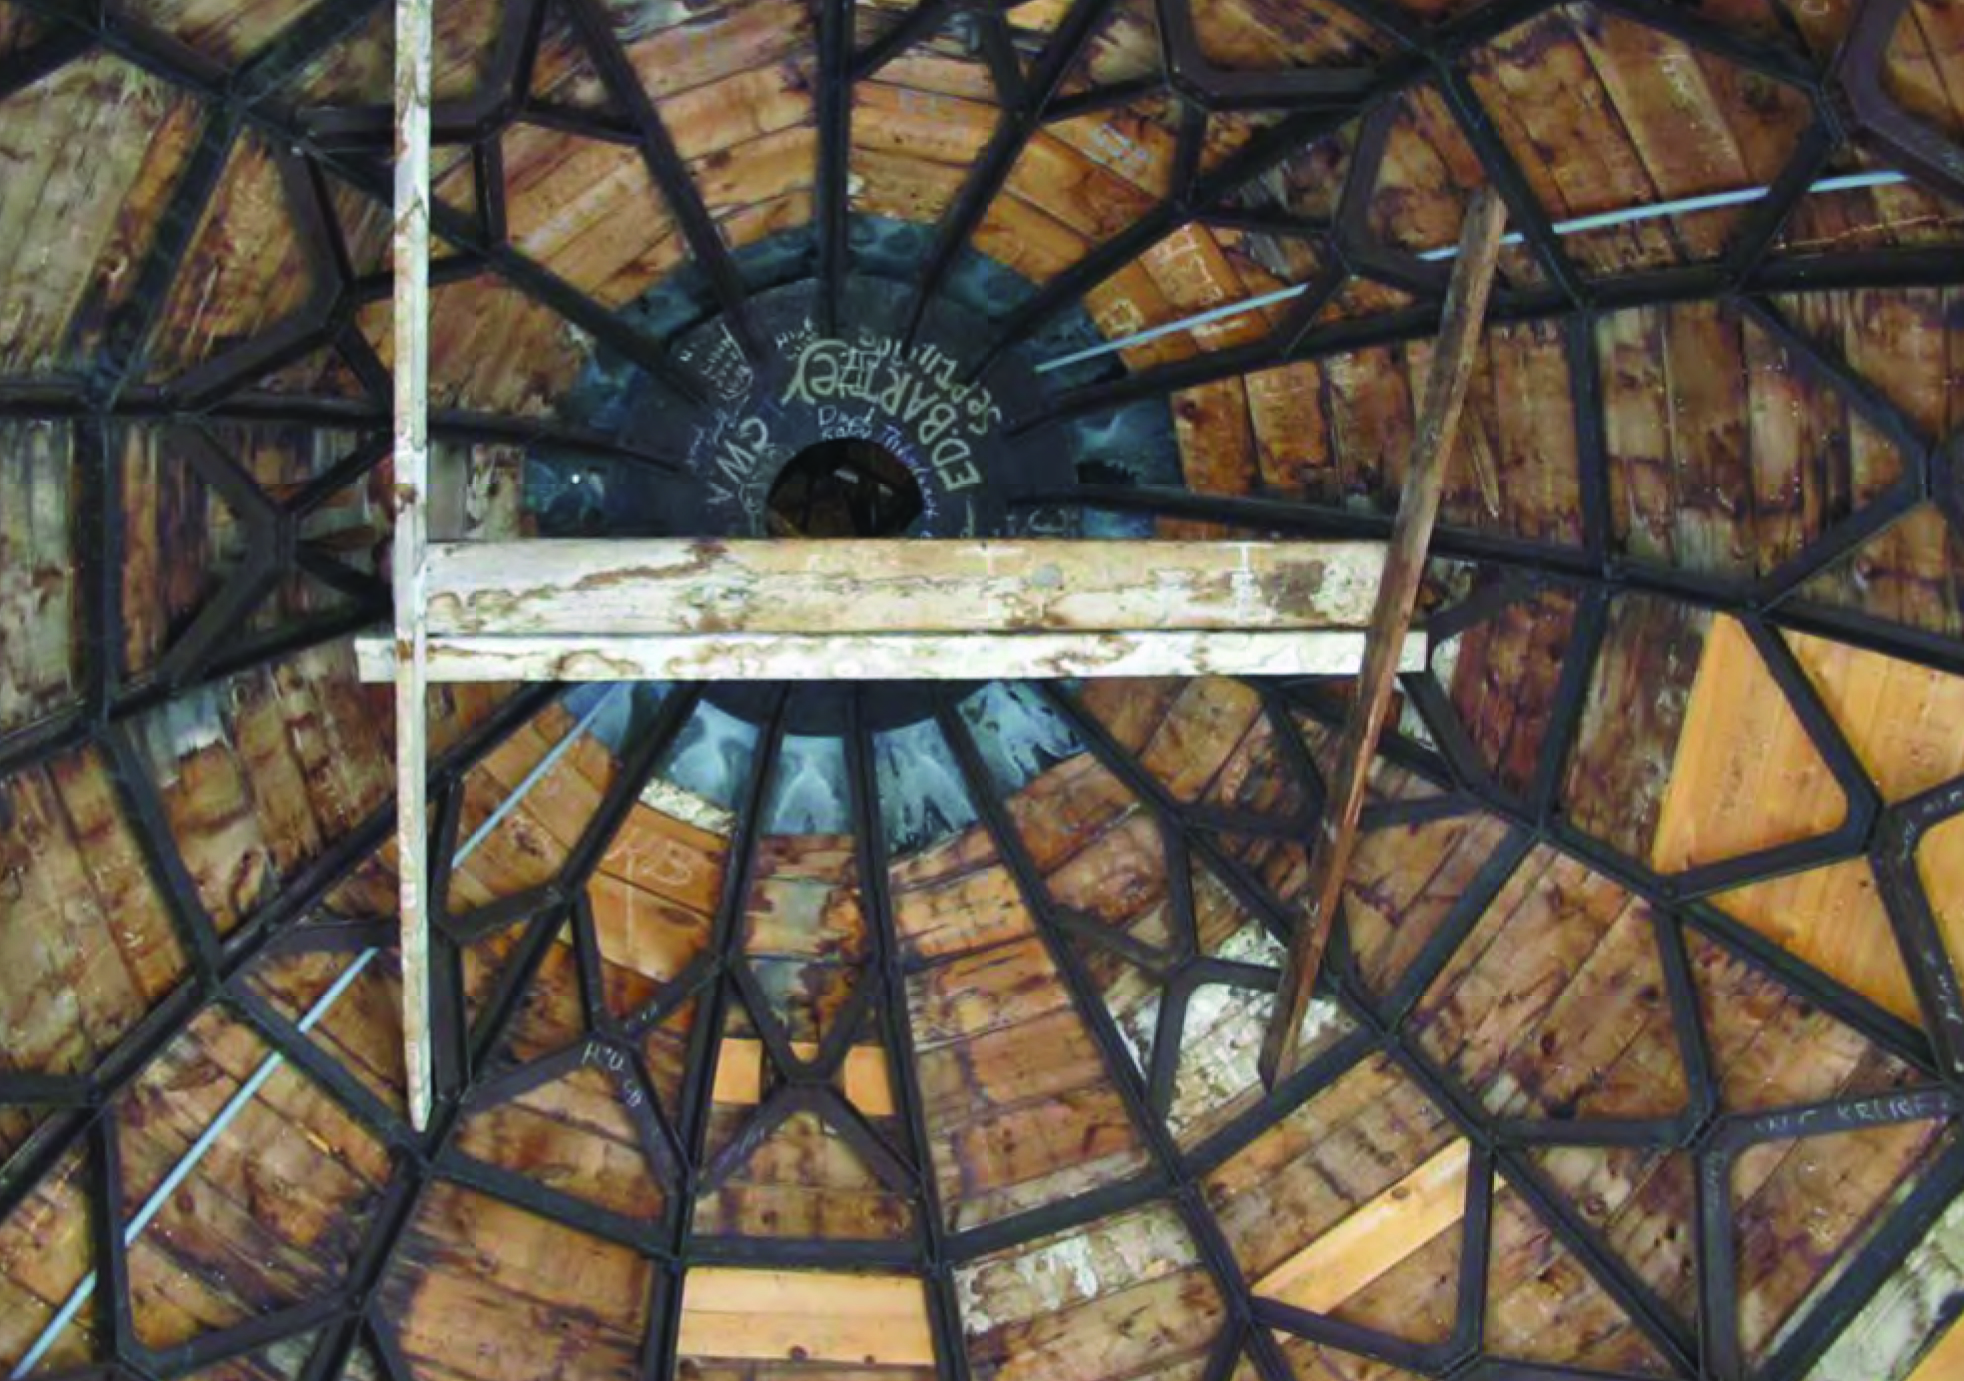 Widespread moisture damage is shown on the underside of the dome wood decking.